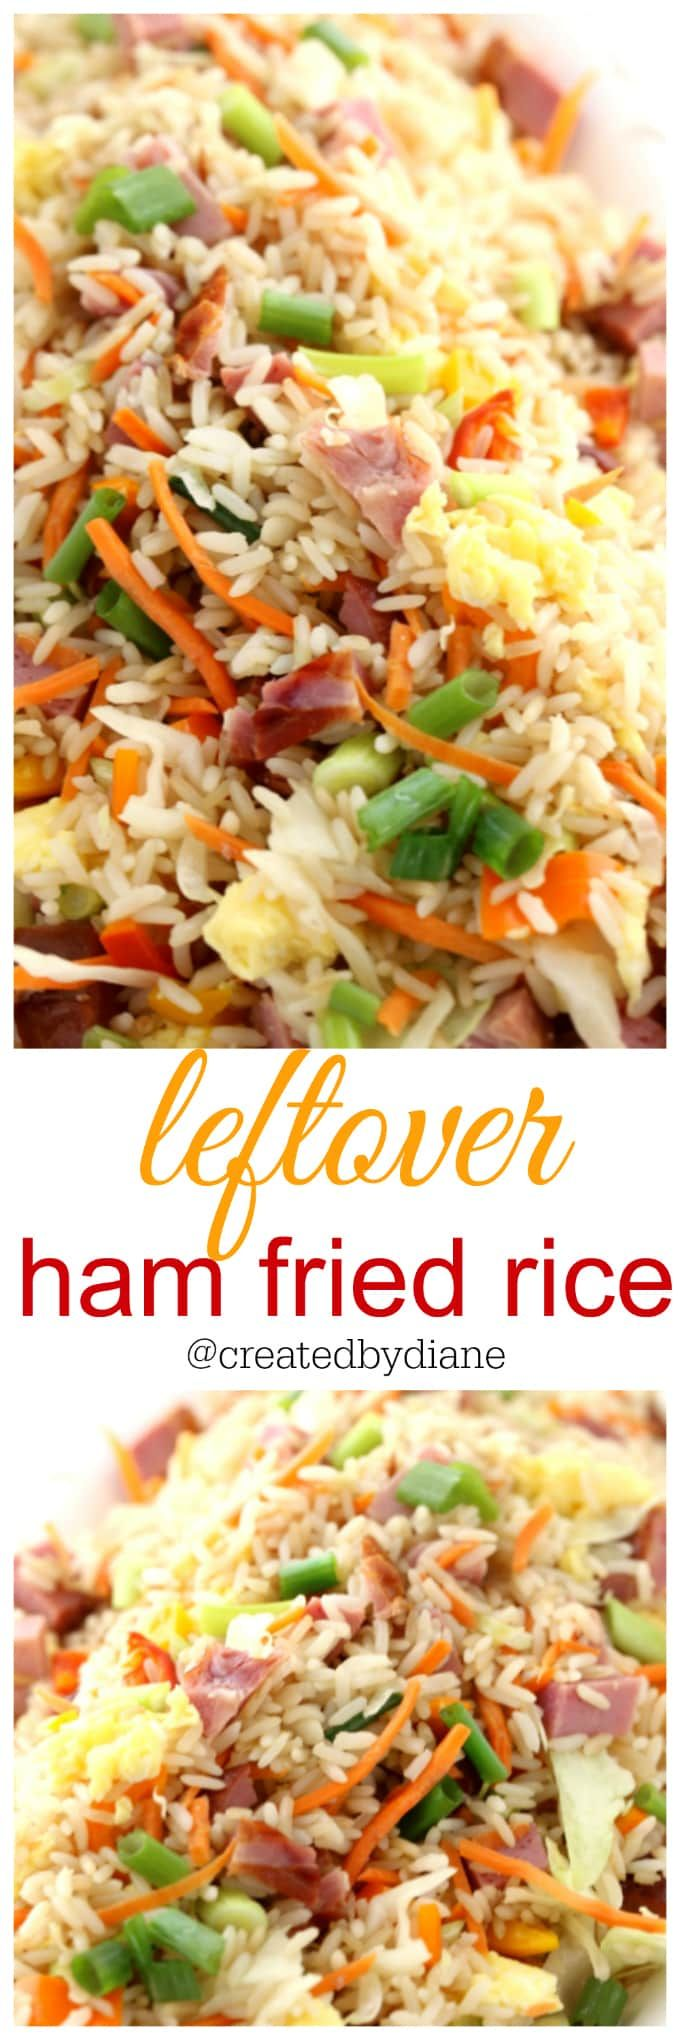 leftover ham fried rice recipes great for holiday ham, breakfast recipe @createdbydiane